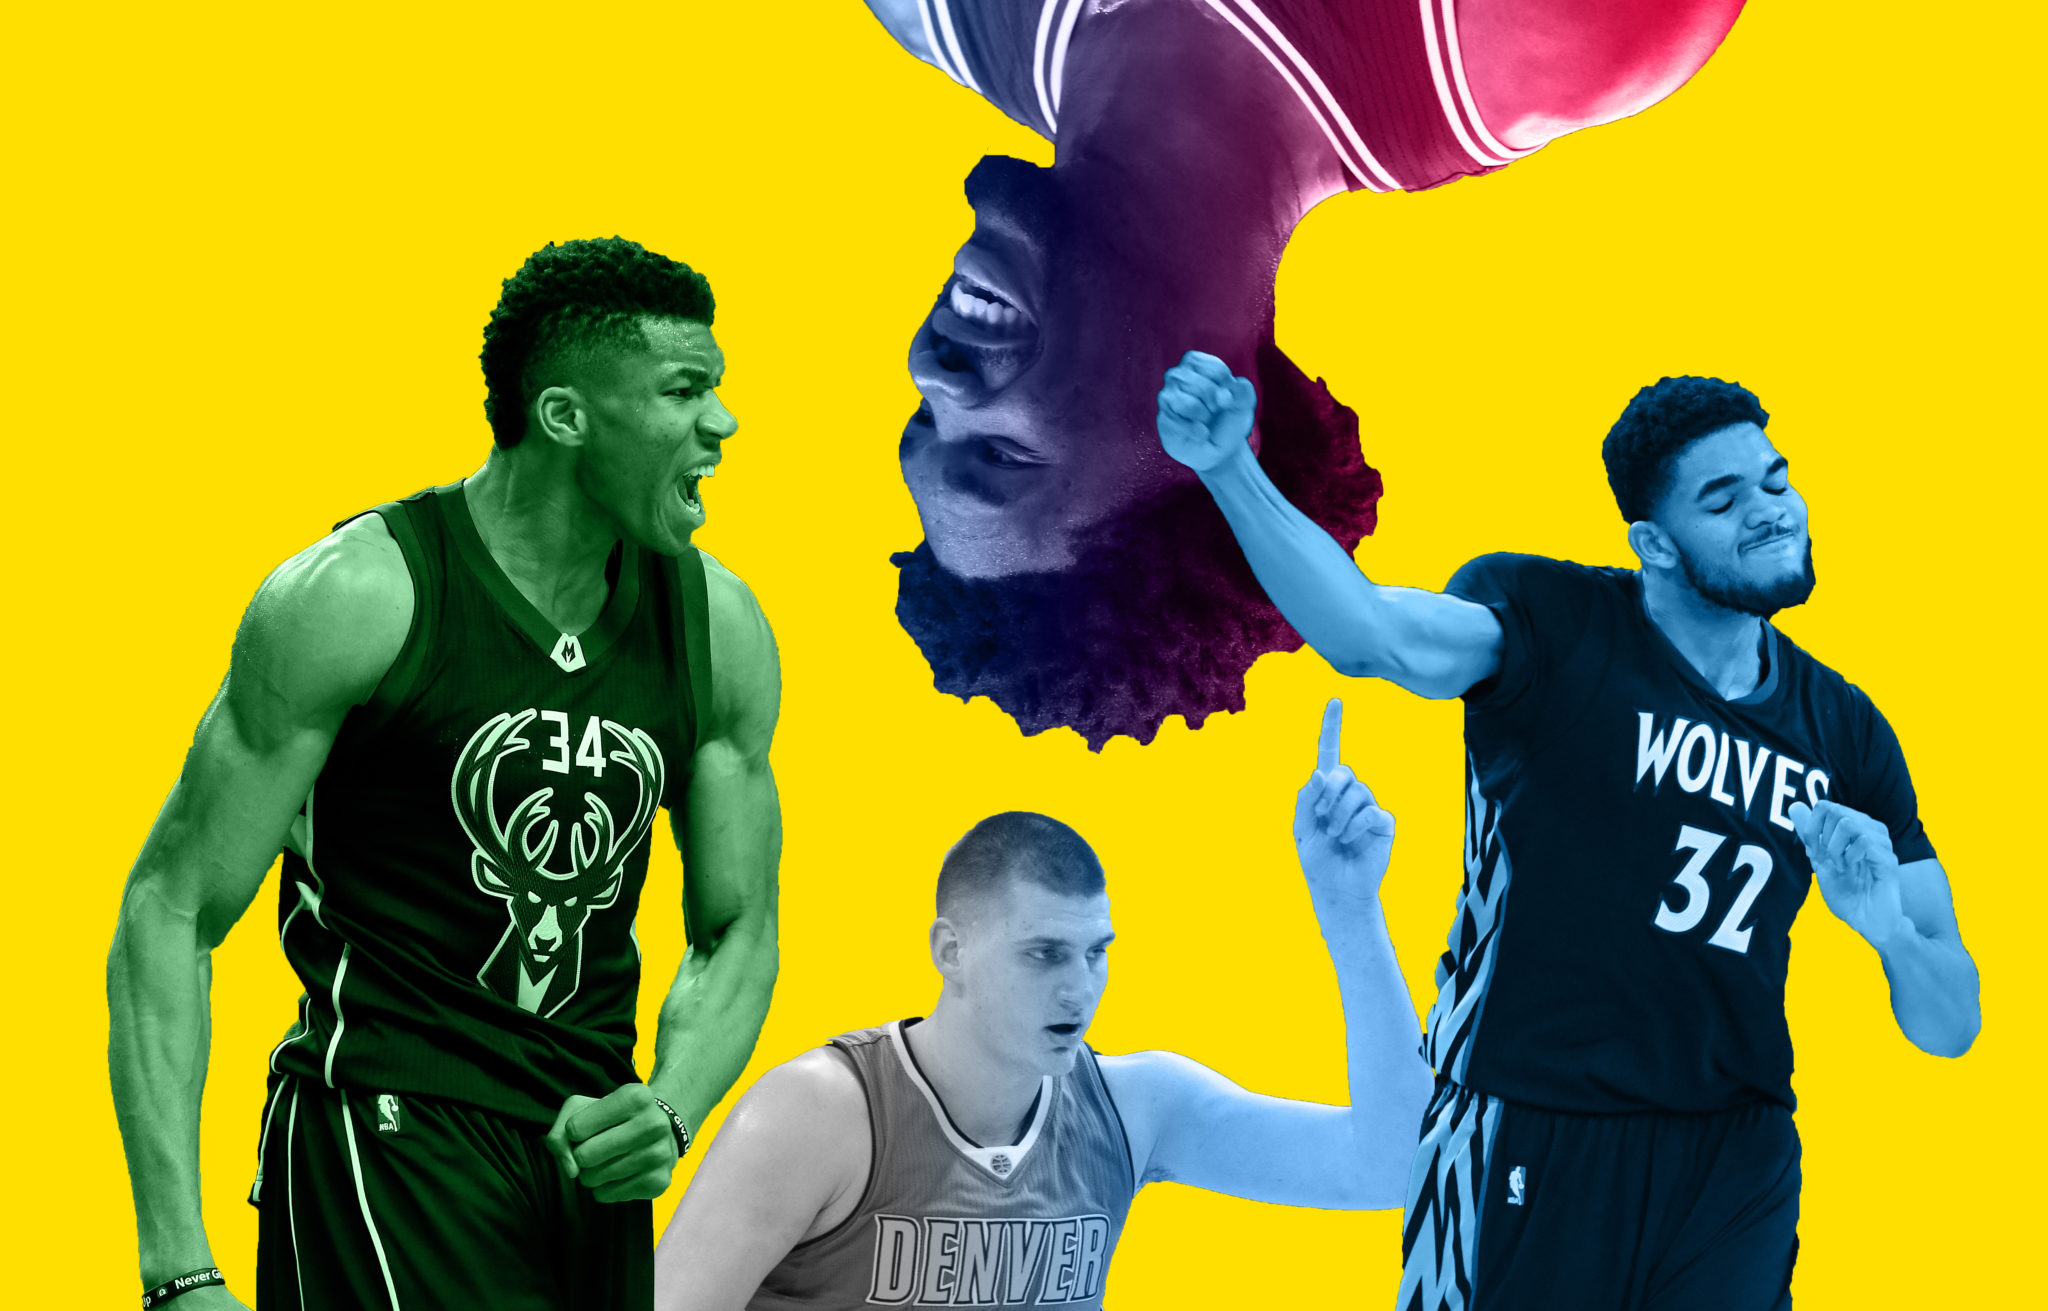 dff628c2f Projecting The Next Wave Of NBA MVP Winners